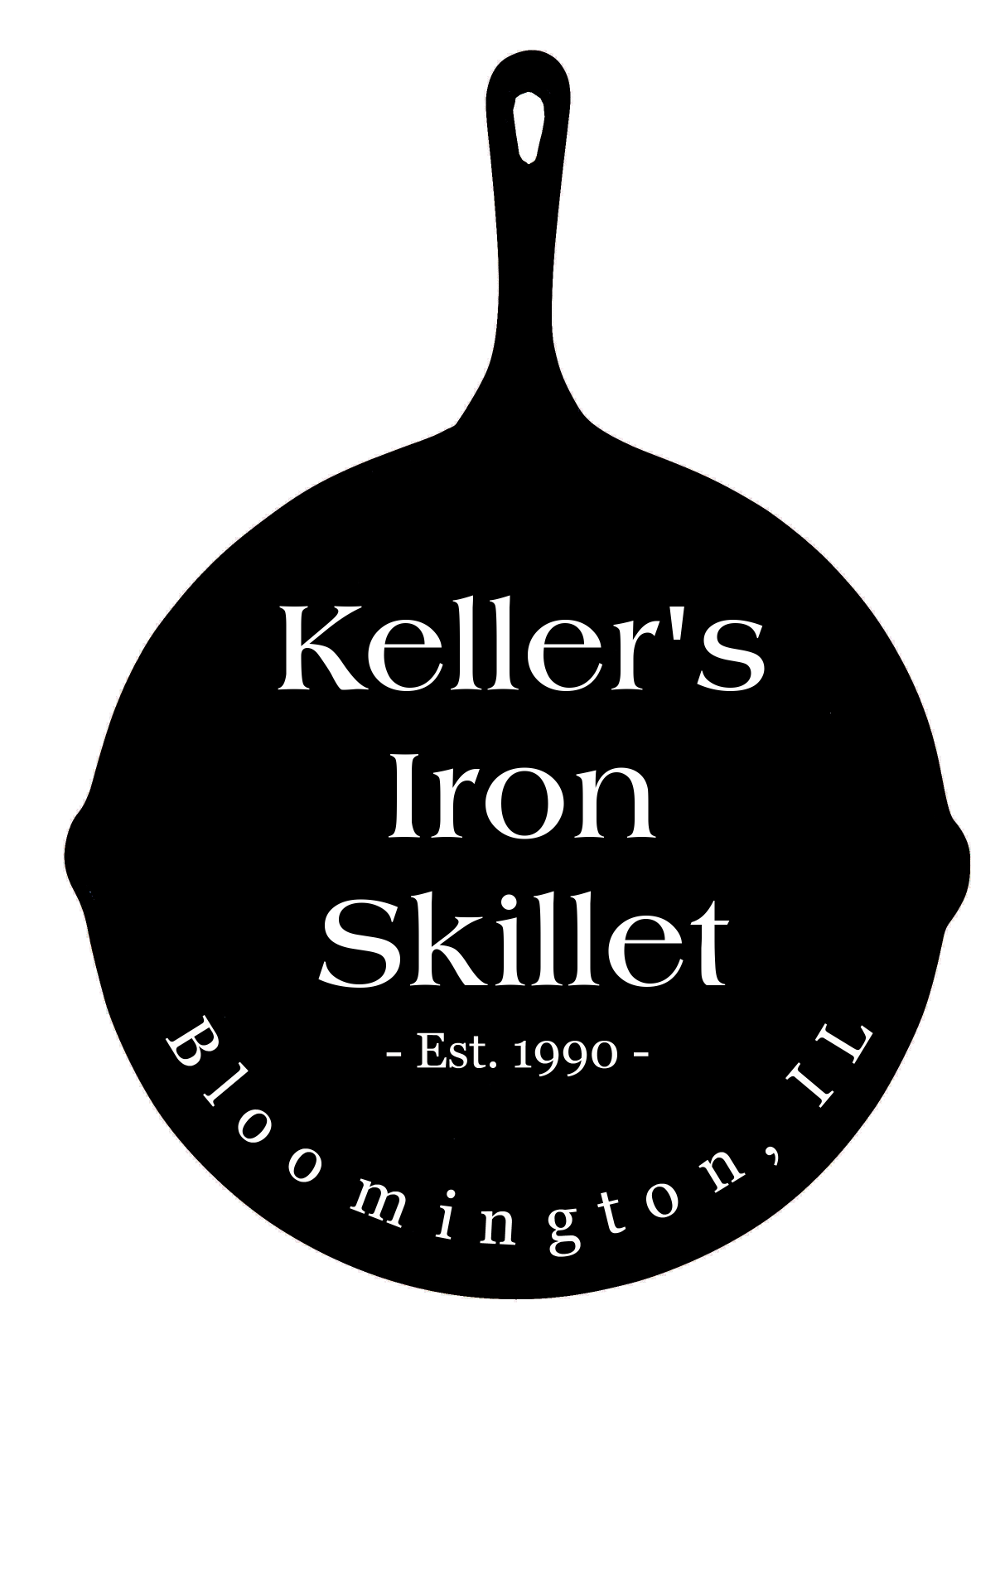 a slightly larger kellers catering logo